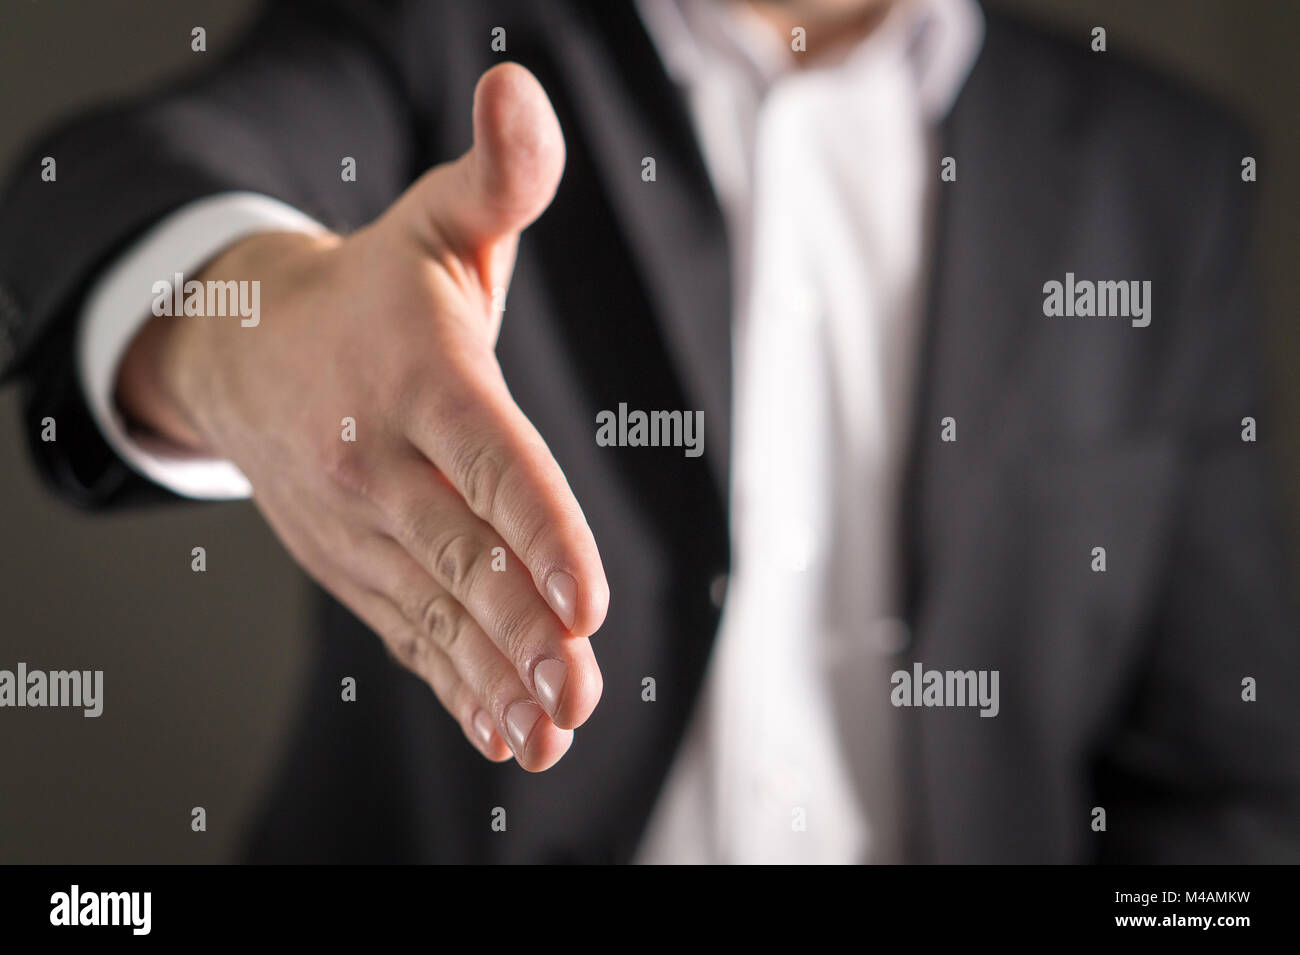 Business man offer and give hand for handshake. Salesman or real estate agent shake for deal, agreement or sale. - Stock Image